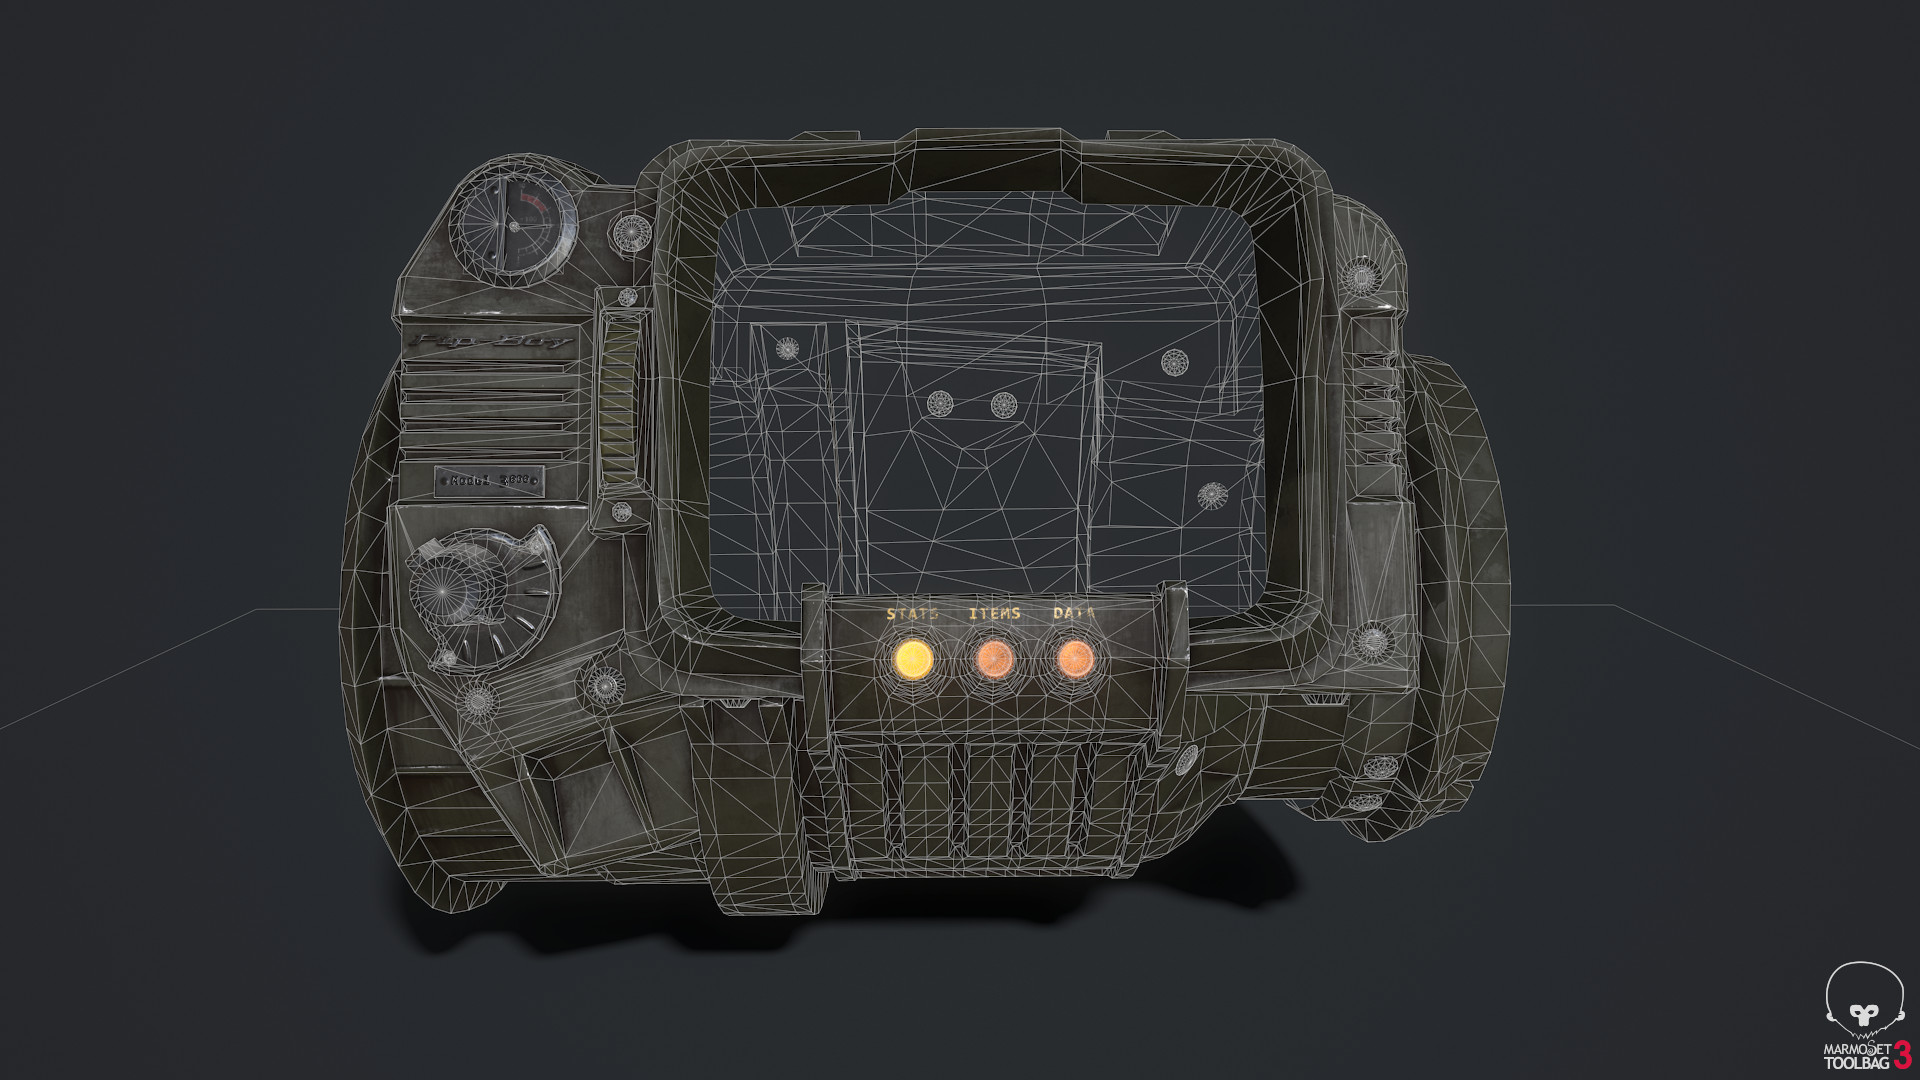 Pipboy 3000 Remastered [Fallout 3] [Works In Progress]